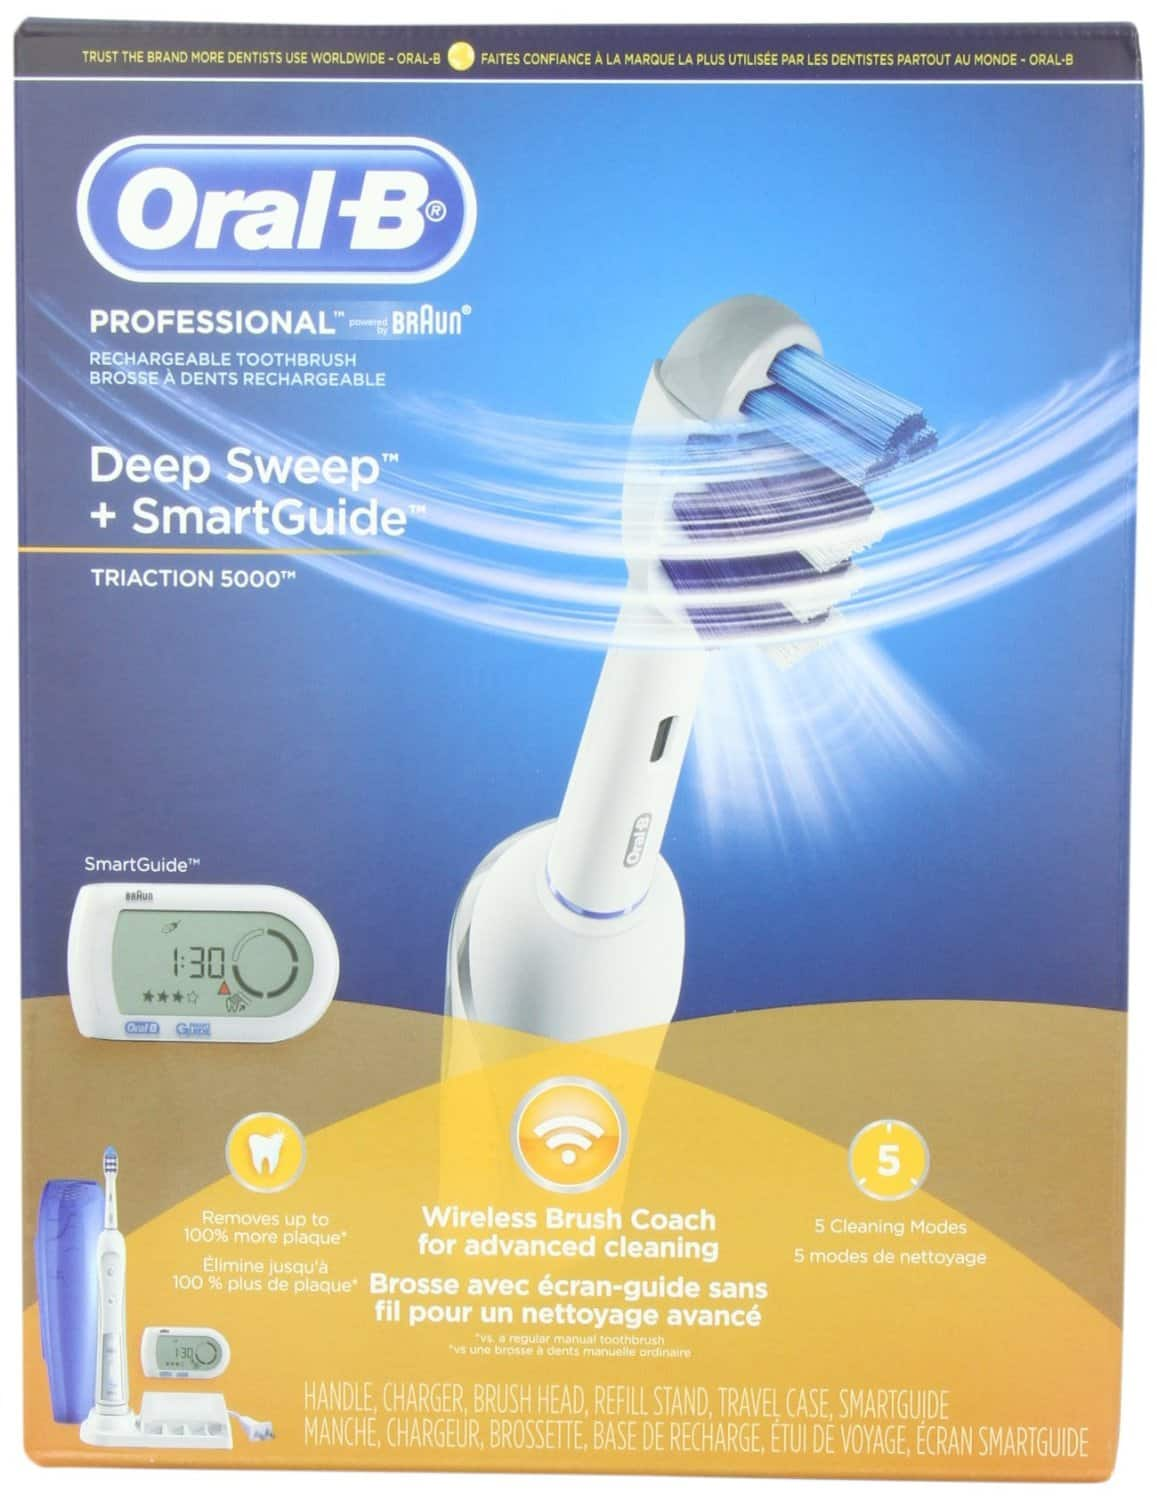 Oral-B Professional Deep Sweep with Smart Guide Triaction 5000 $79+Free Shipping